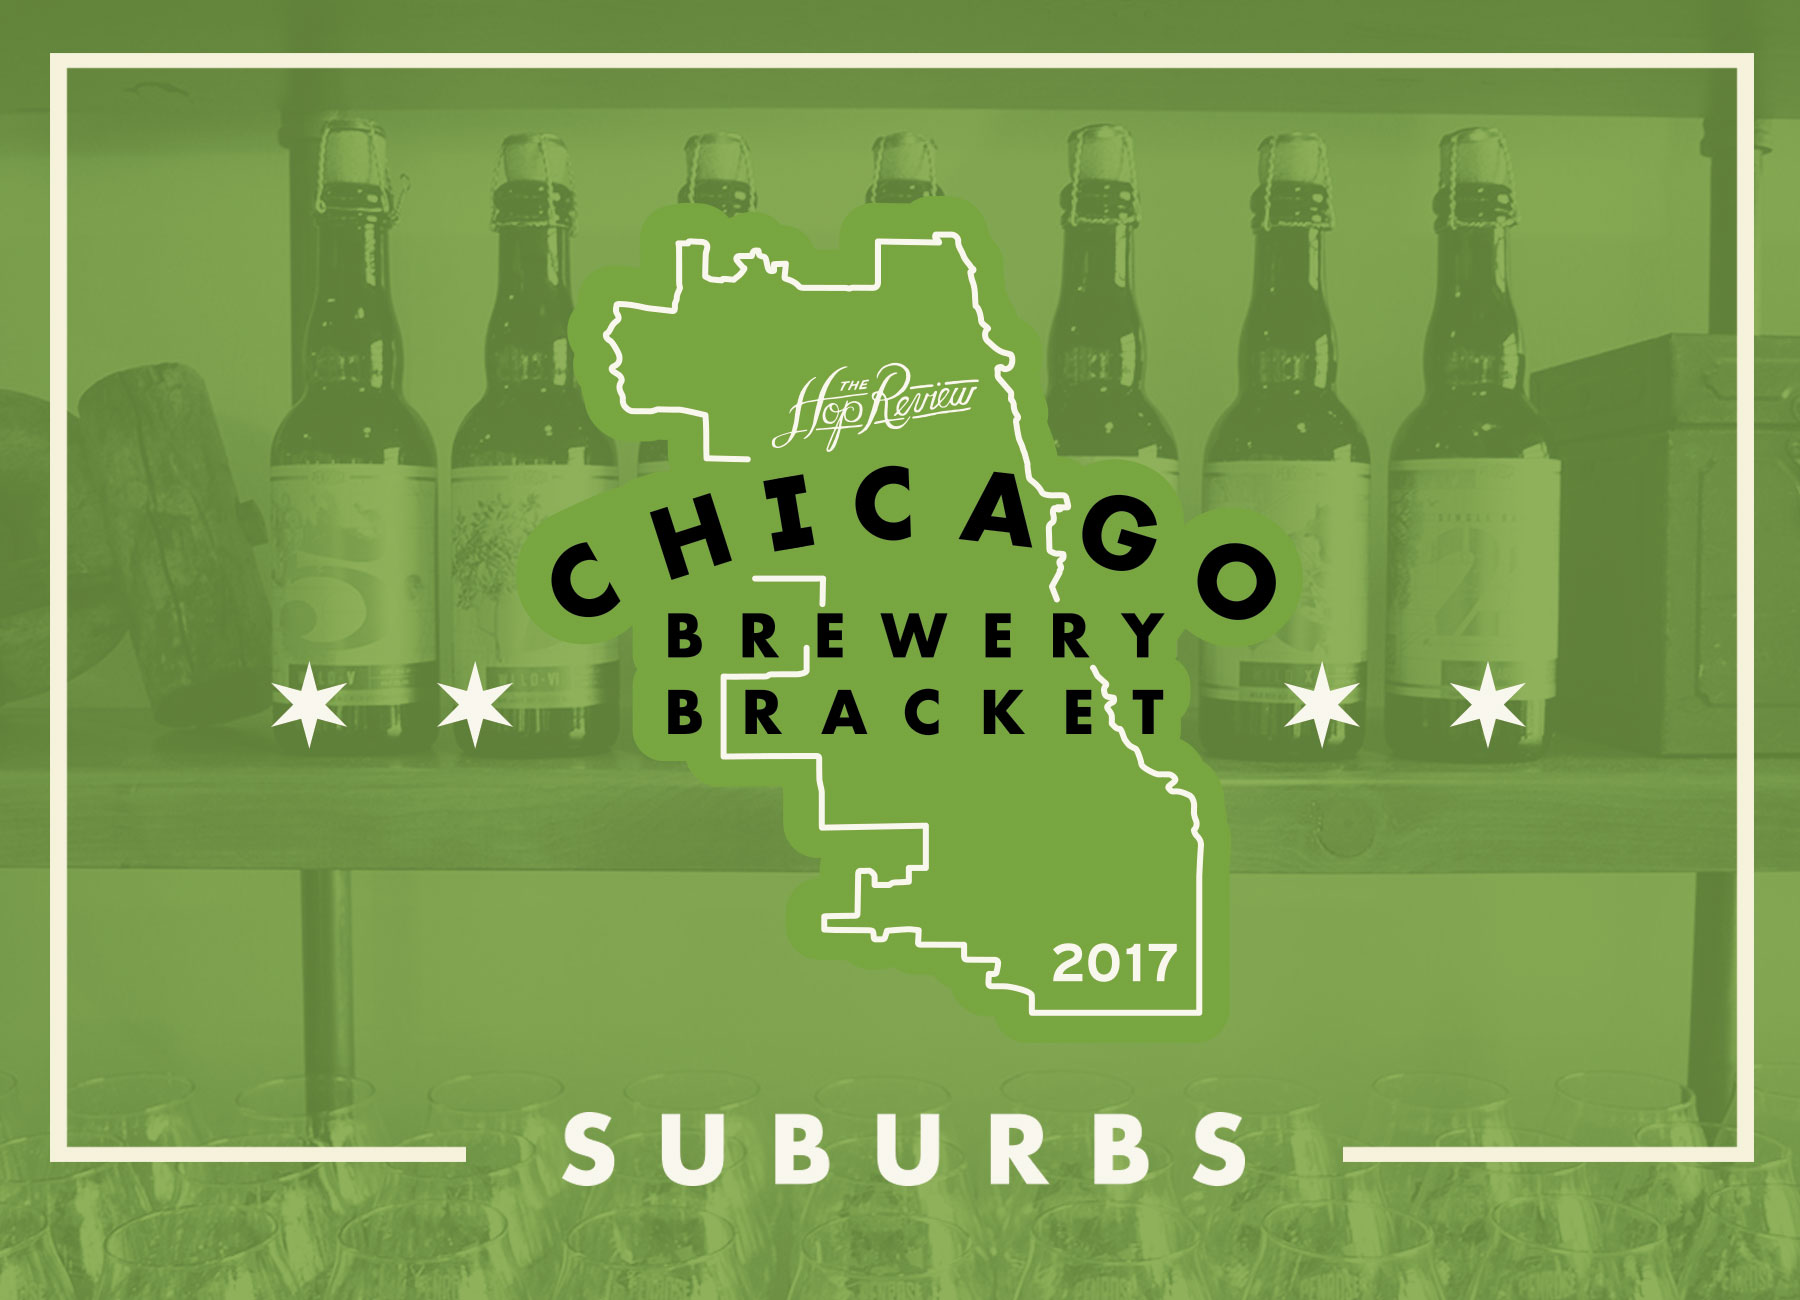 Chicago Brewery Bracket: Suburbs – Rd. 1